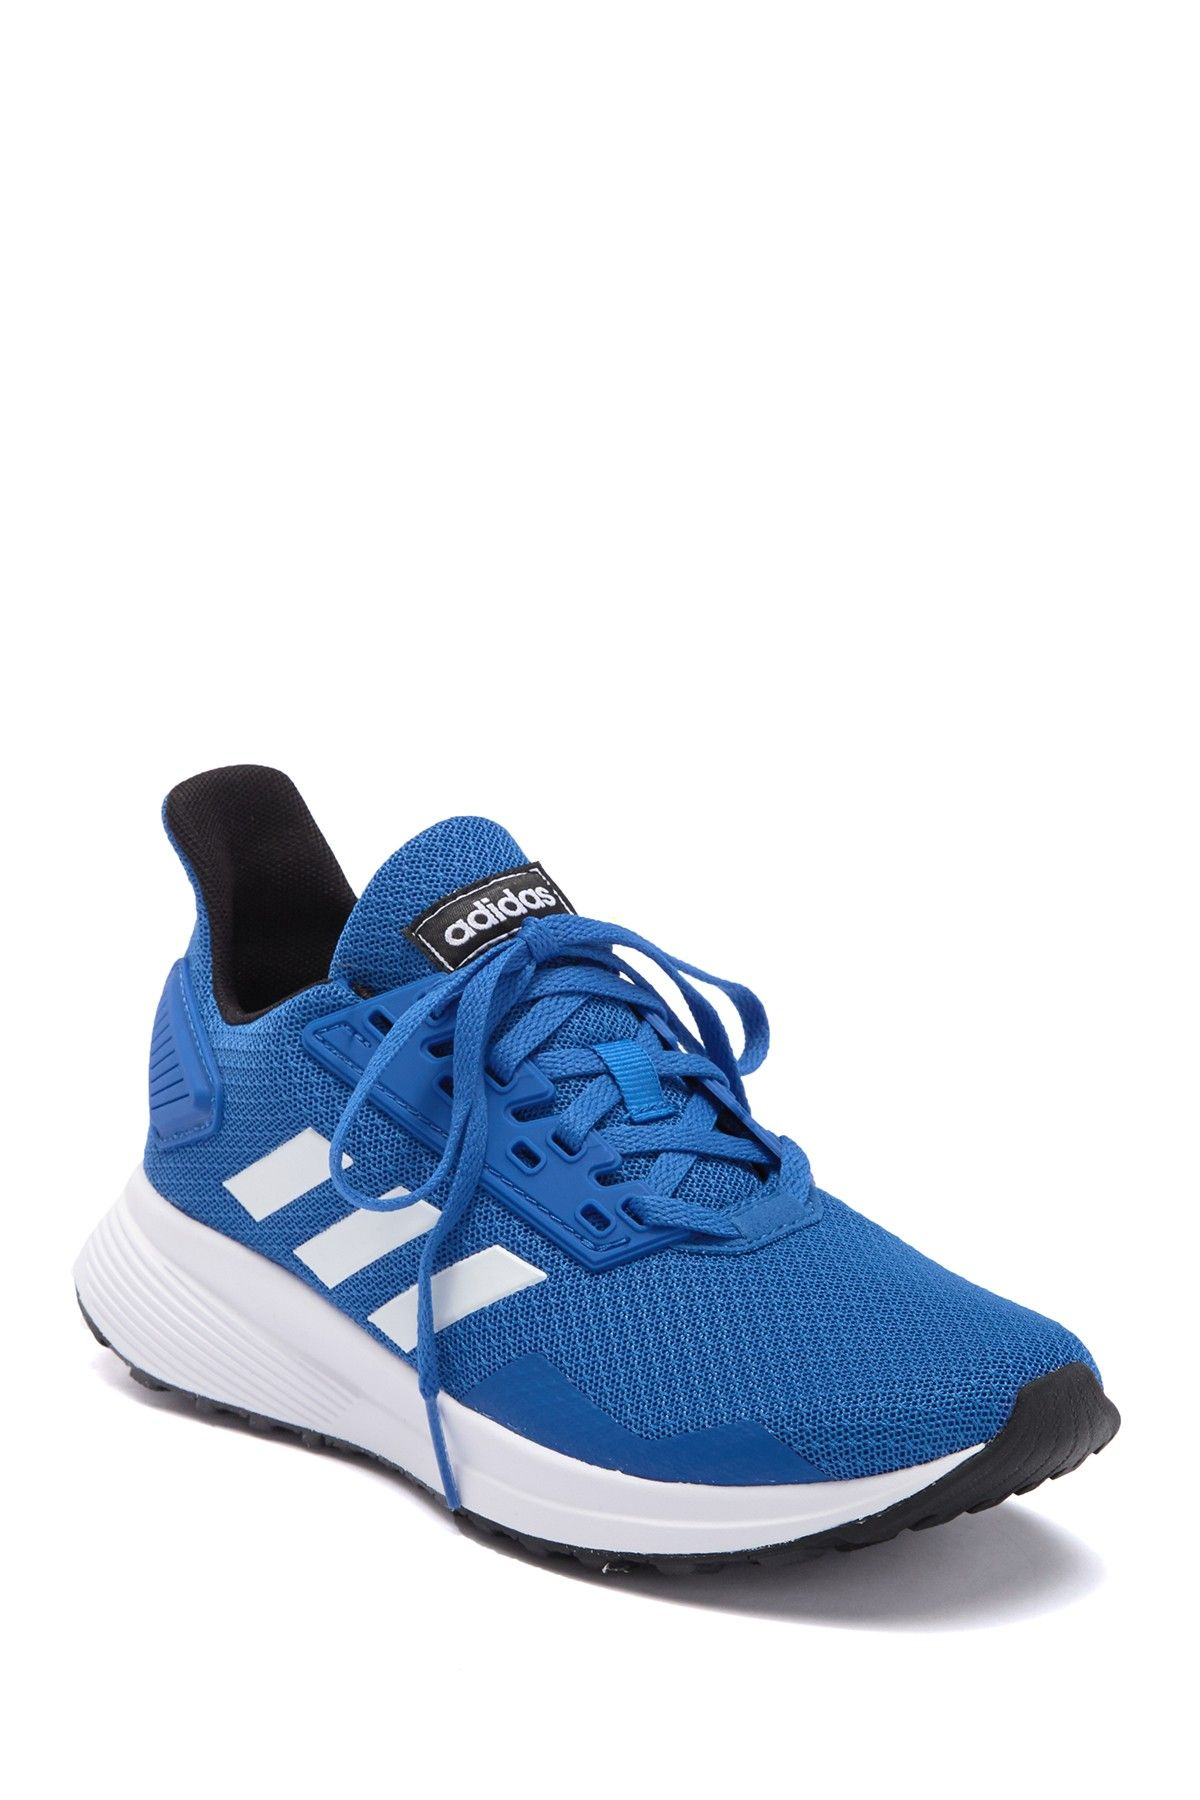 purchase cheap ca8b2 0679e adidas - Duramo 9 Sneaker (Little Kid   Big Kid) is now 30% off. Free  Shipping on orders over  100.